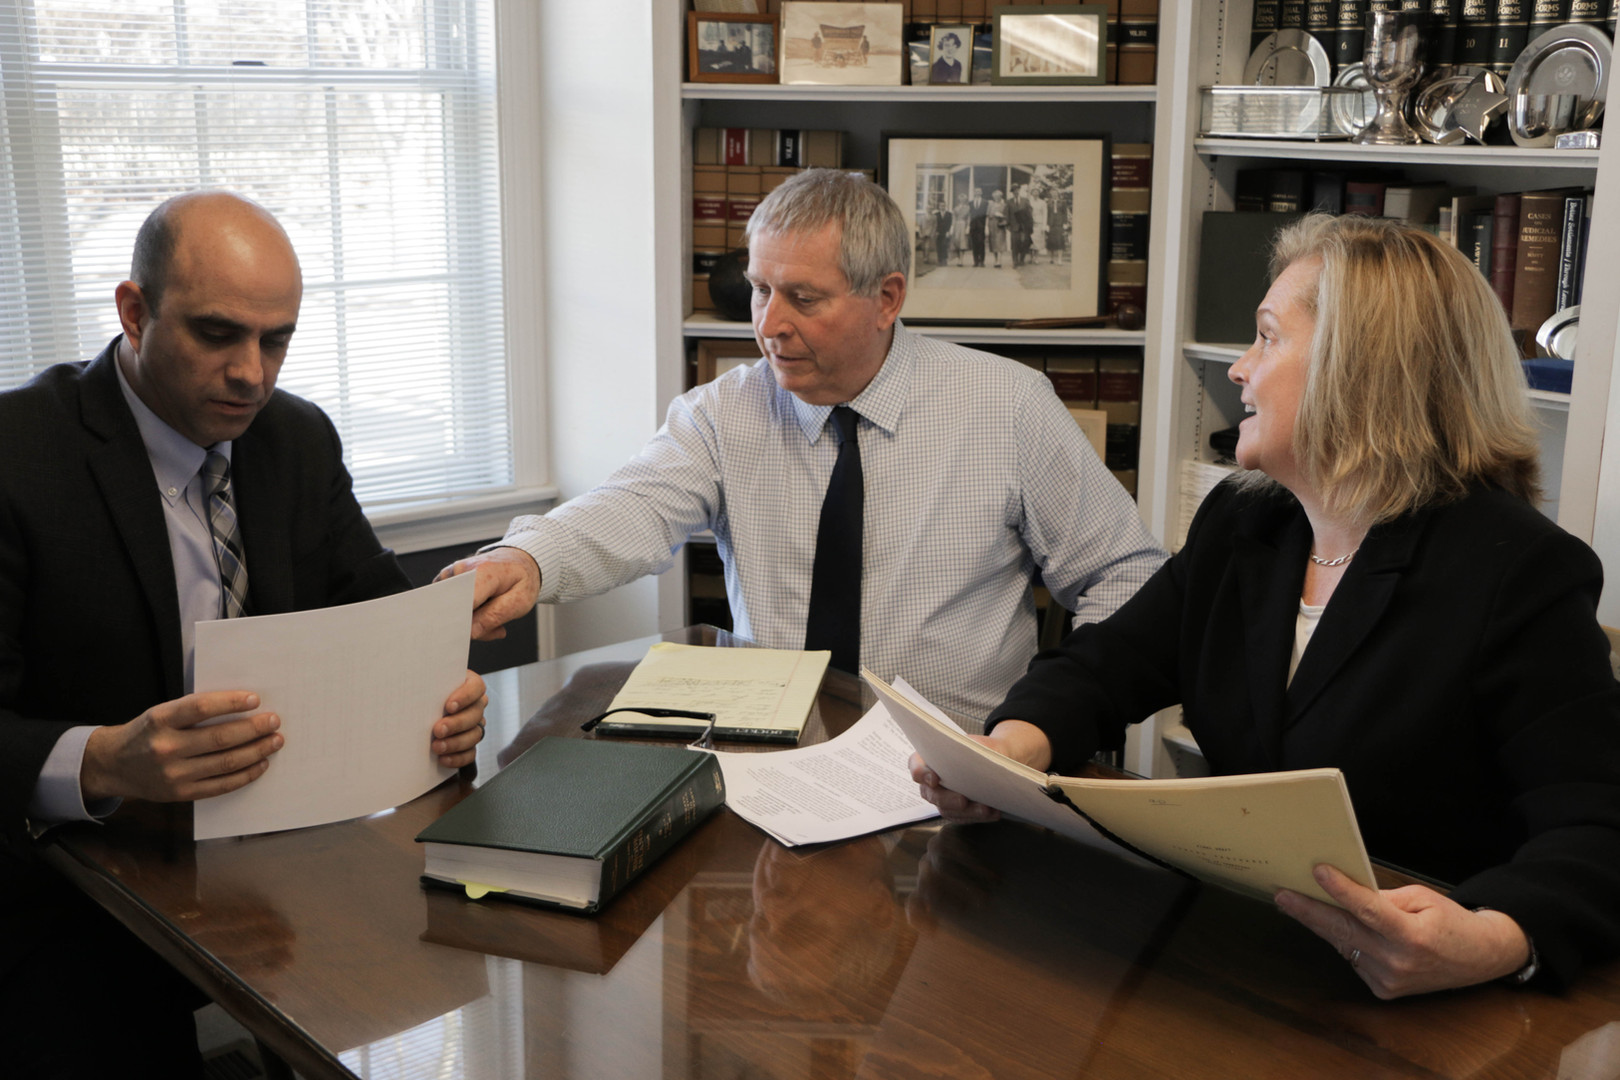 Christian S. Infantolino, John A. Murphy, and Emily J. Murphy Prior at Morneau & Murphy office in Jamest